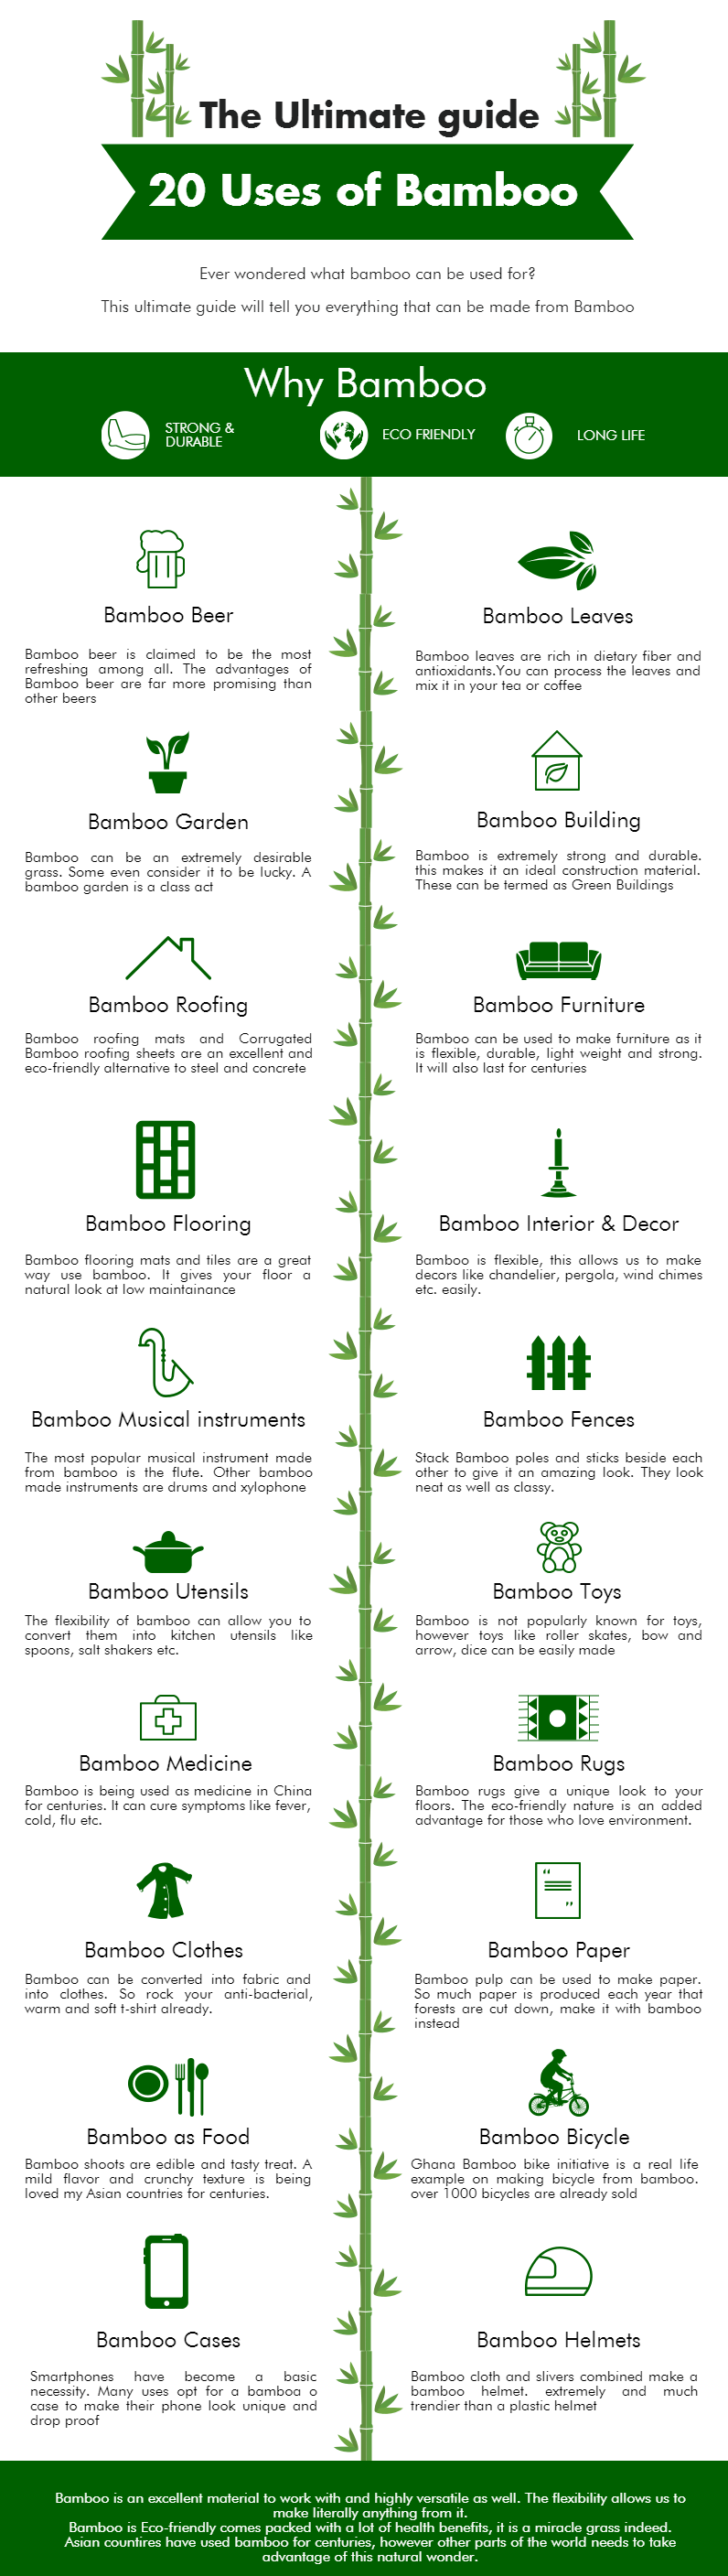 20 Uses of Bamboo For Home fice and Yourself Infographic